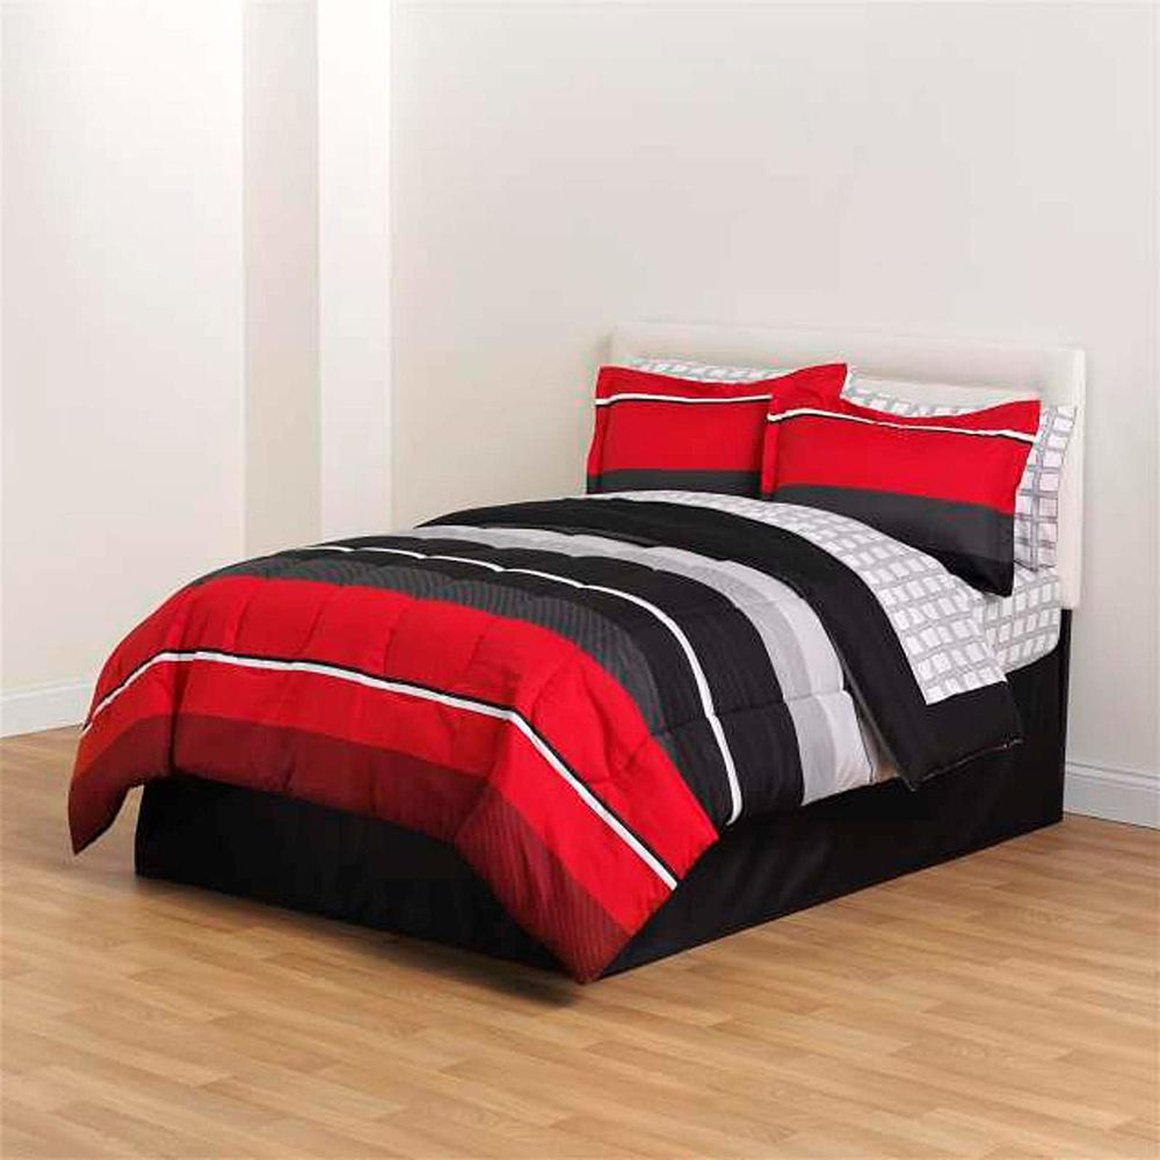 Full Comforter Set Black Red Gray White Rugby Boys Stripe Complete Bedding Set 8 Piece Bed in a Bag